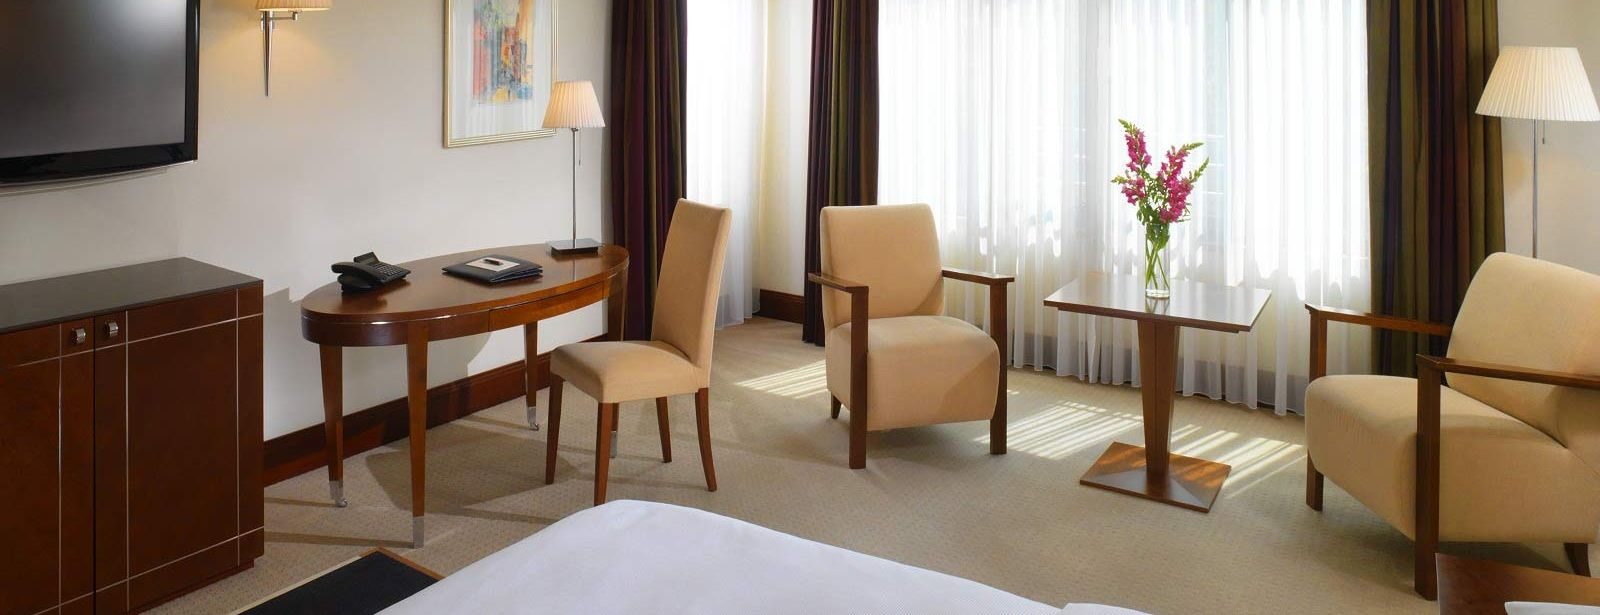 Executive Room - Sheraton Carlton Hotel Nuremberg